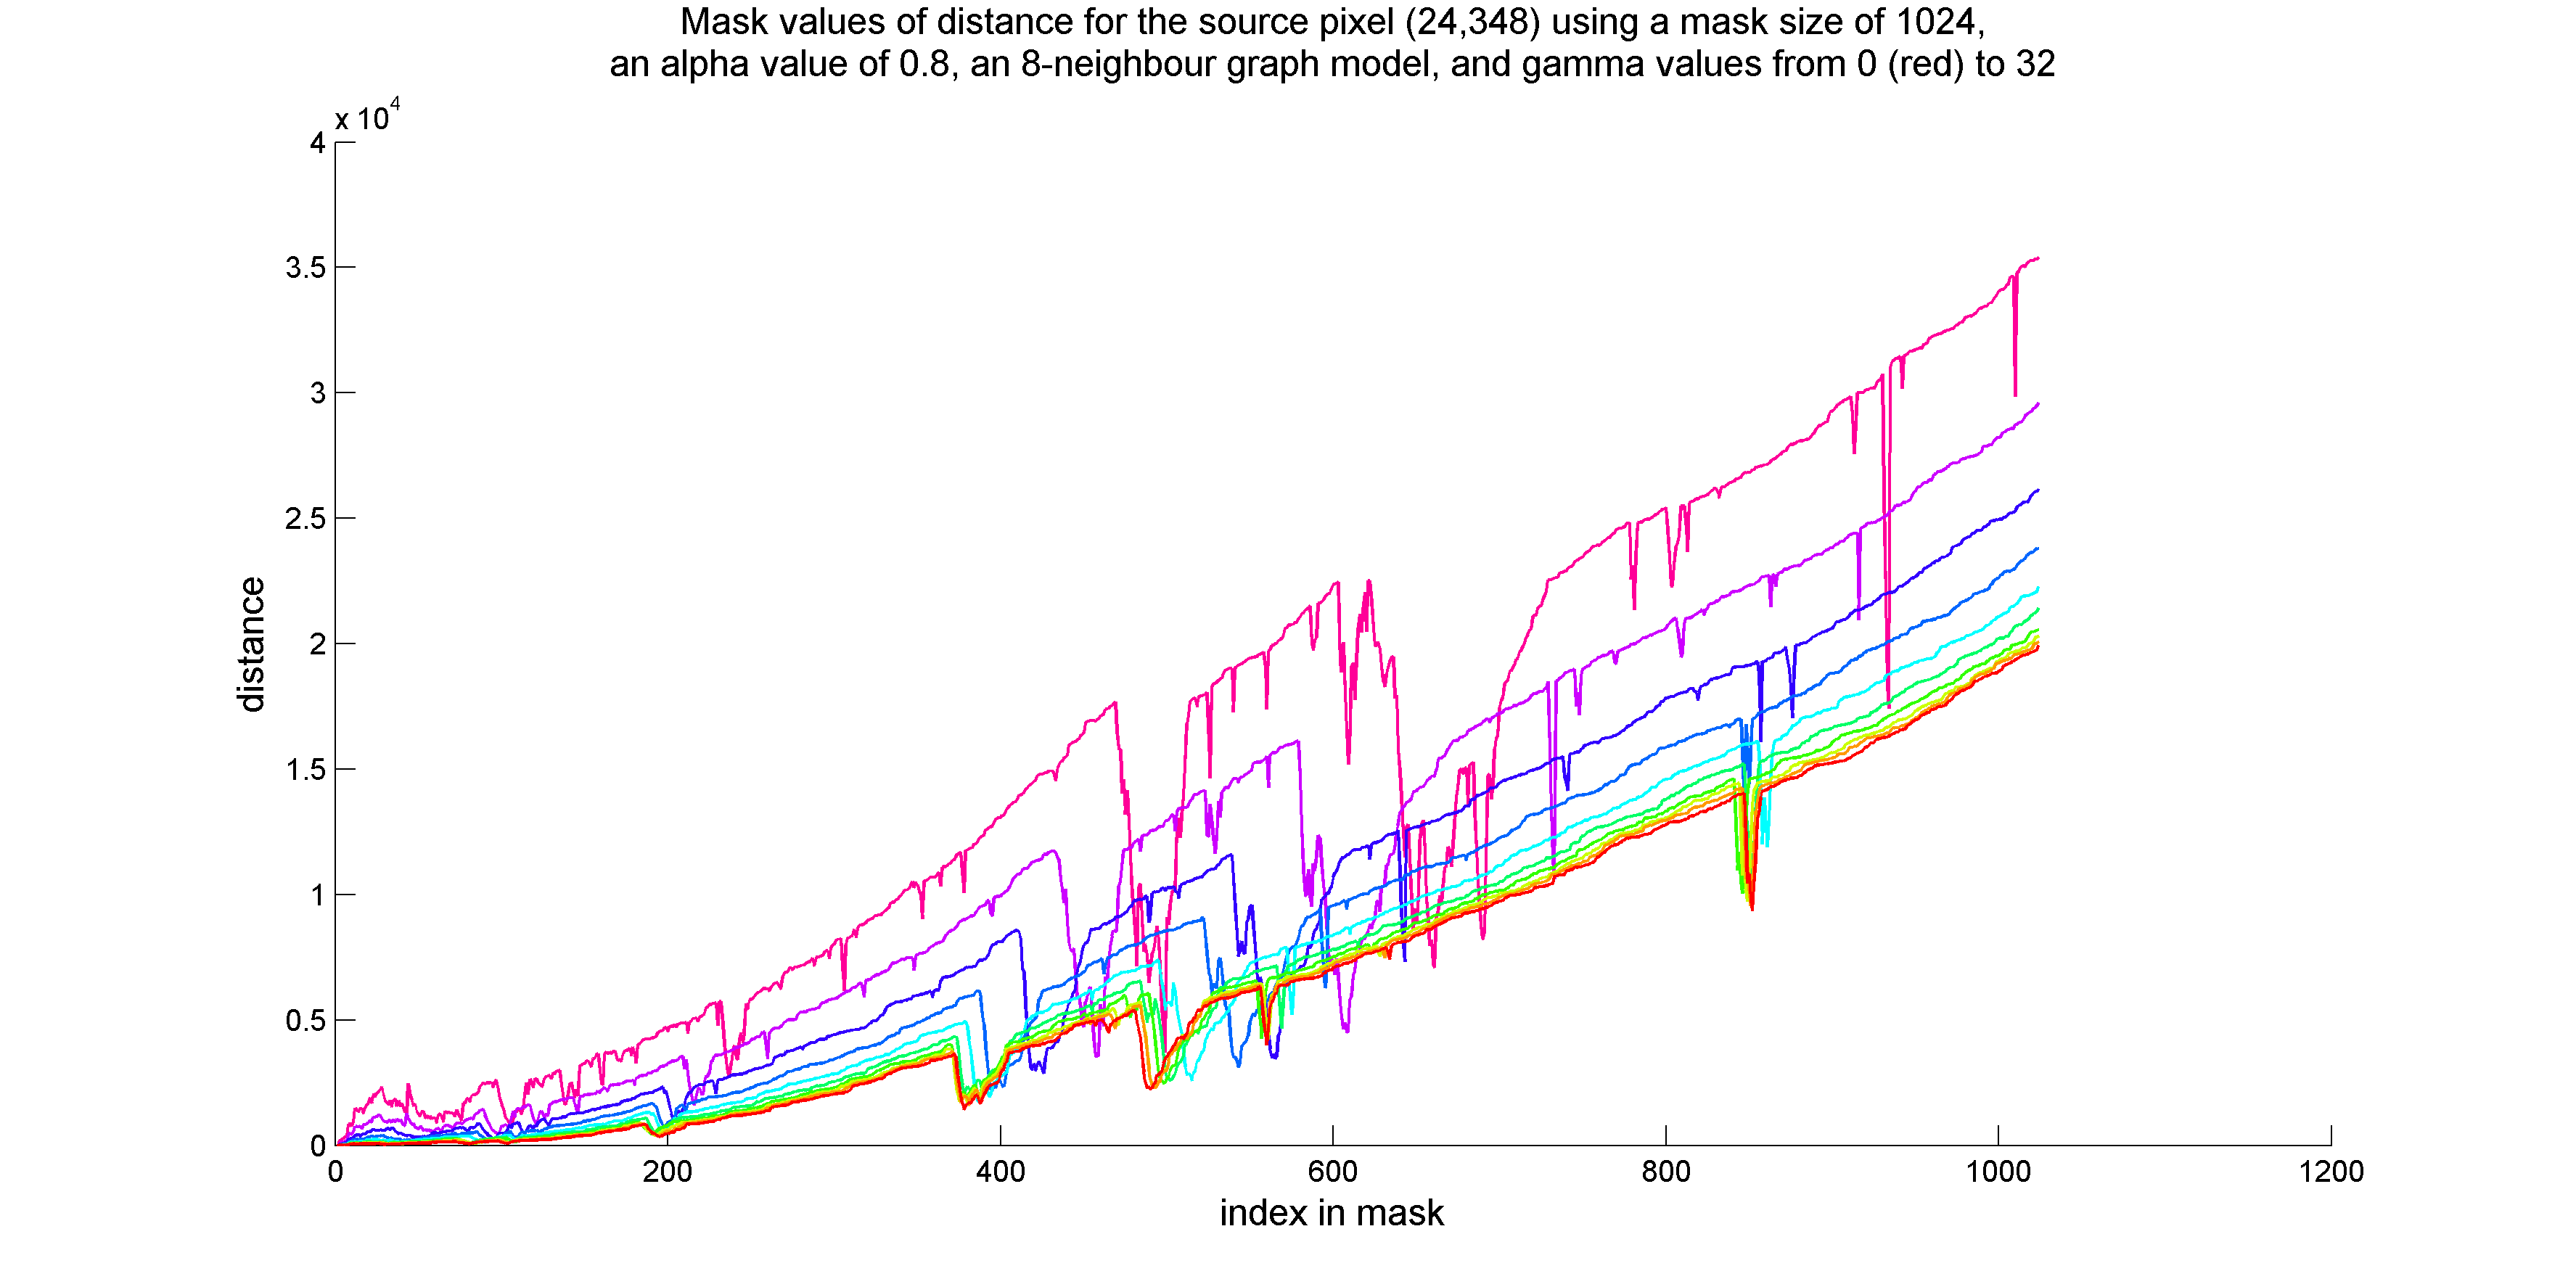 Plot of distances vs. mask index at various gamma parameter values, for an alpha parameter value of 0.8. The source pixel for the mask is at row 24, column 348